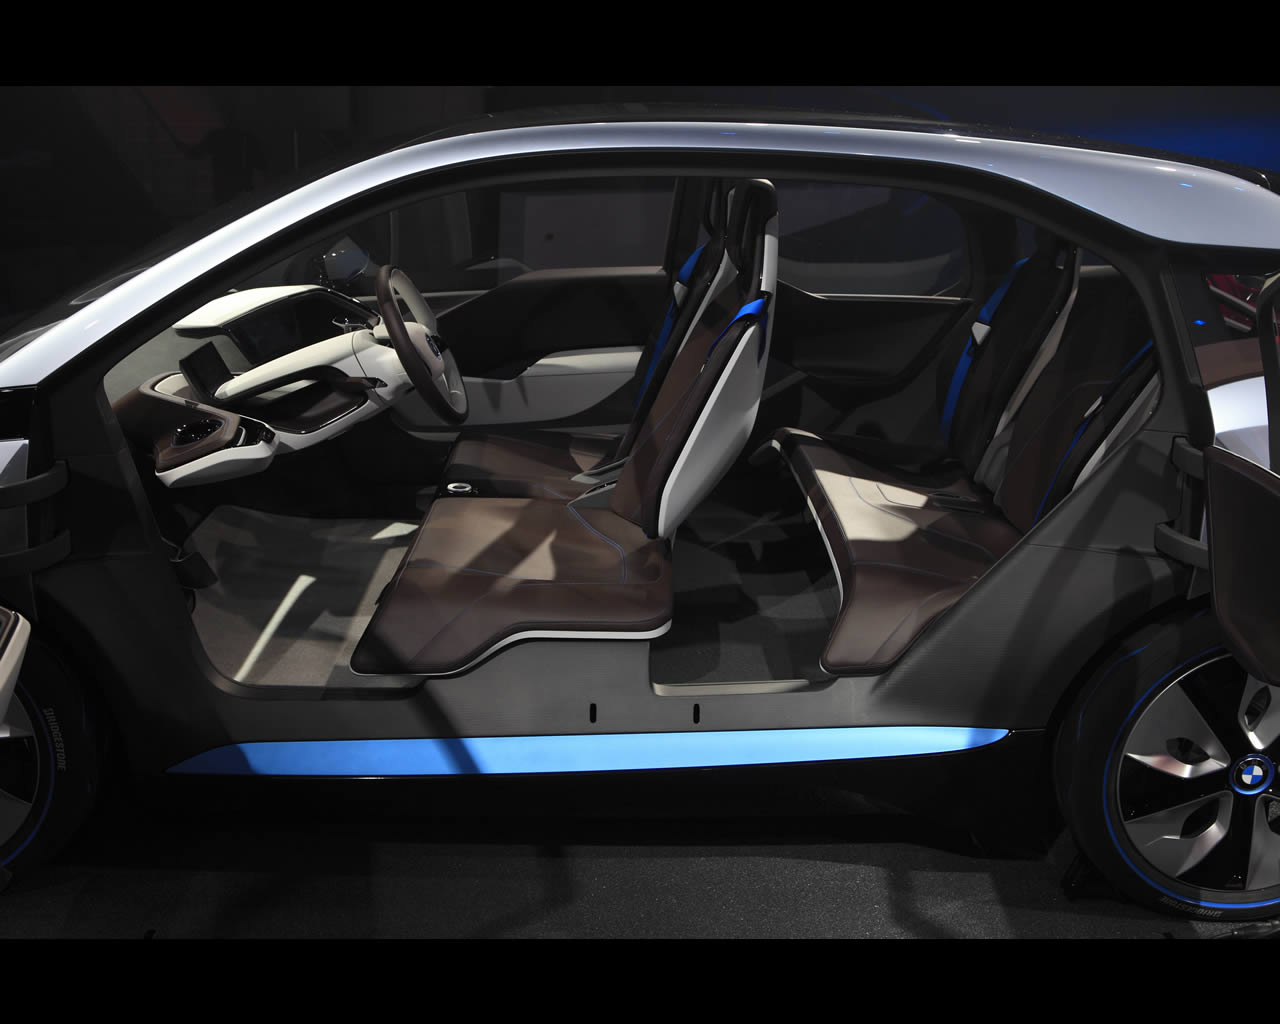 i3 Electric with Range Extender and i8 plug-in full hybrid drive ...